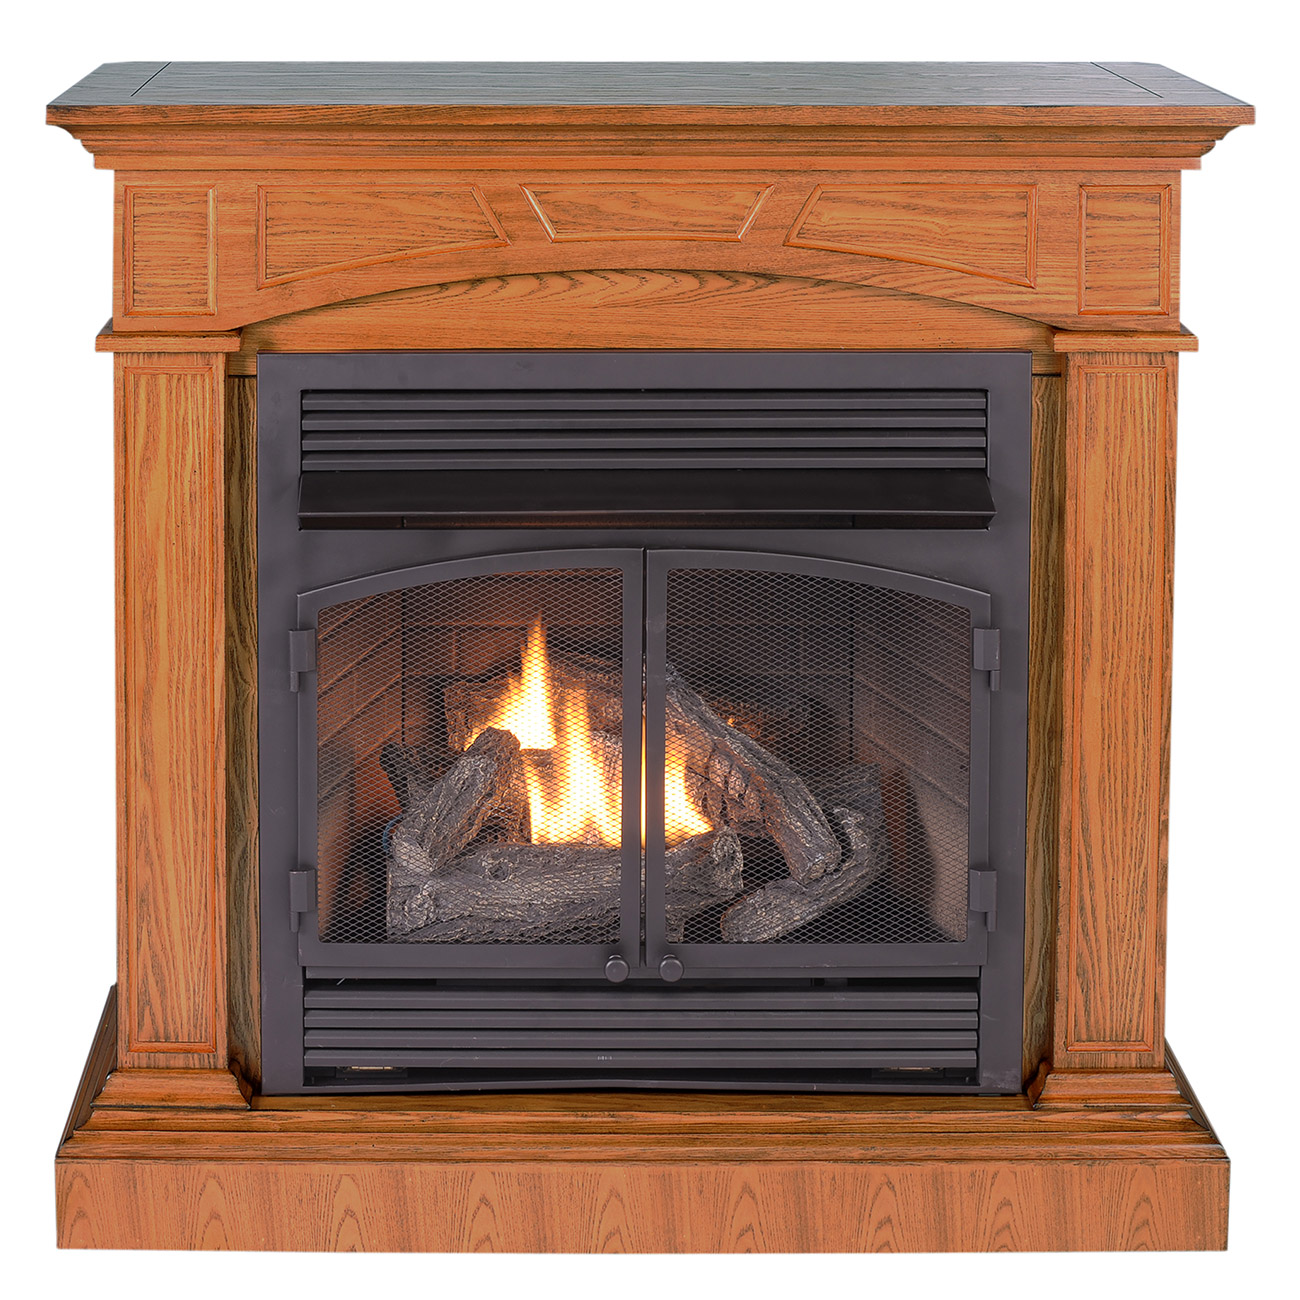 Ventless Fireplace System with Dual Fuel Technology  ProCom Heating